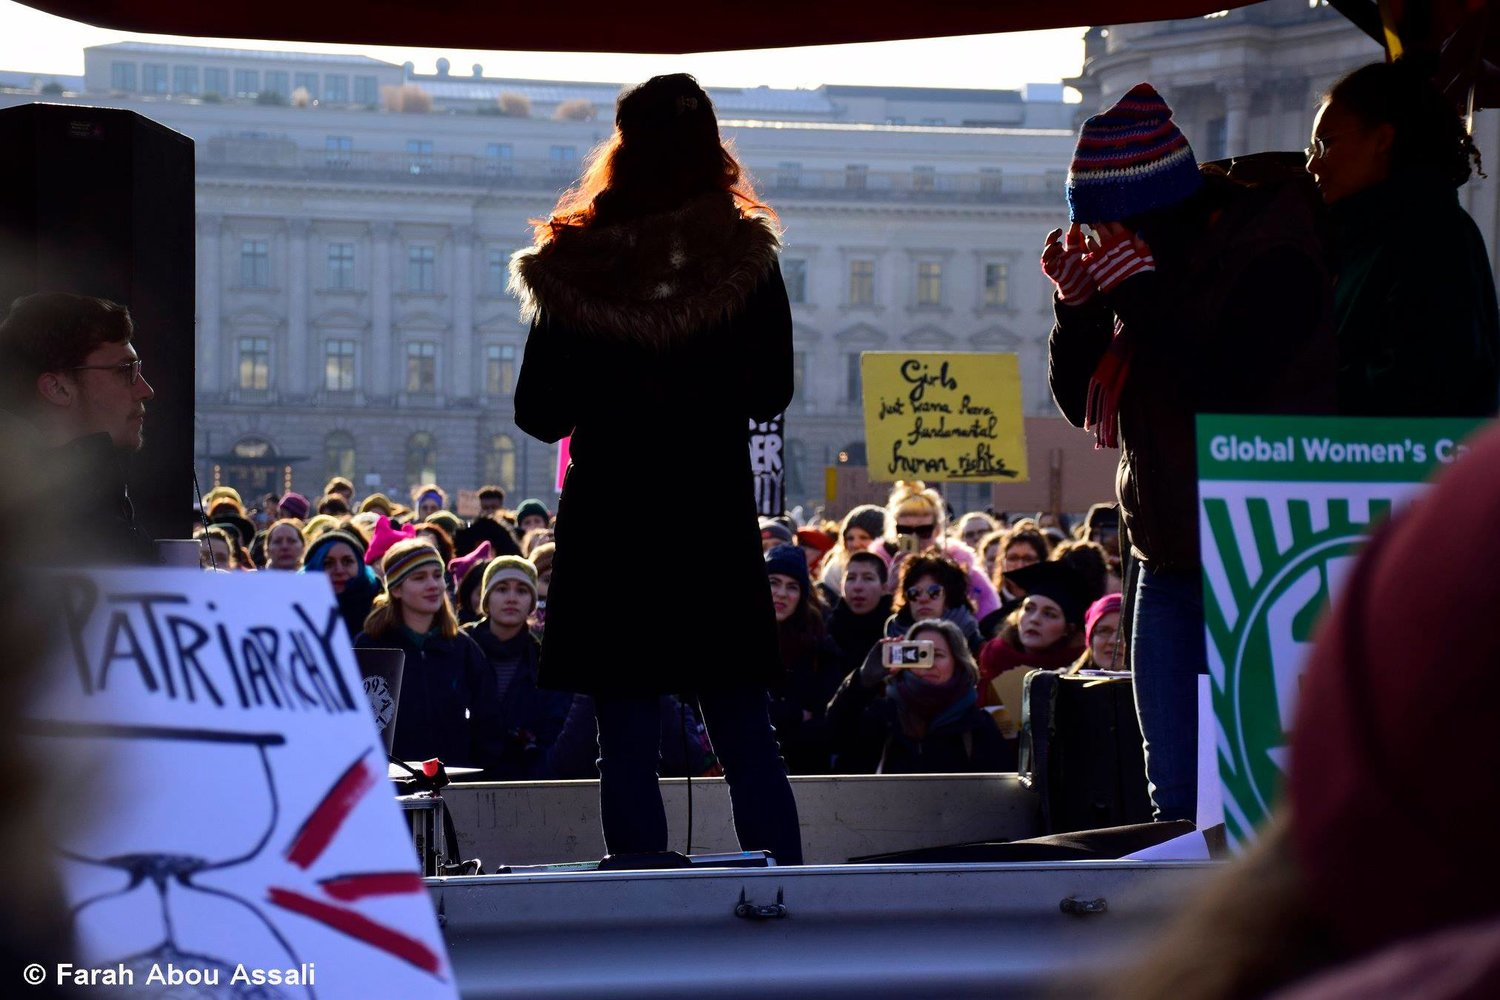 Our founder, Whitney Buchanan, at the Women's March in Berlin speaking about fostering Christian-Muslim relations and supporting refugee women.